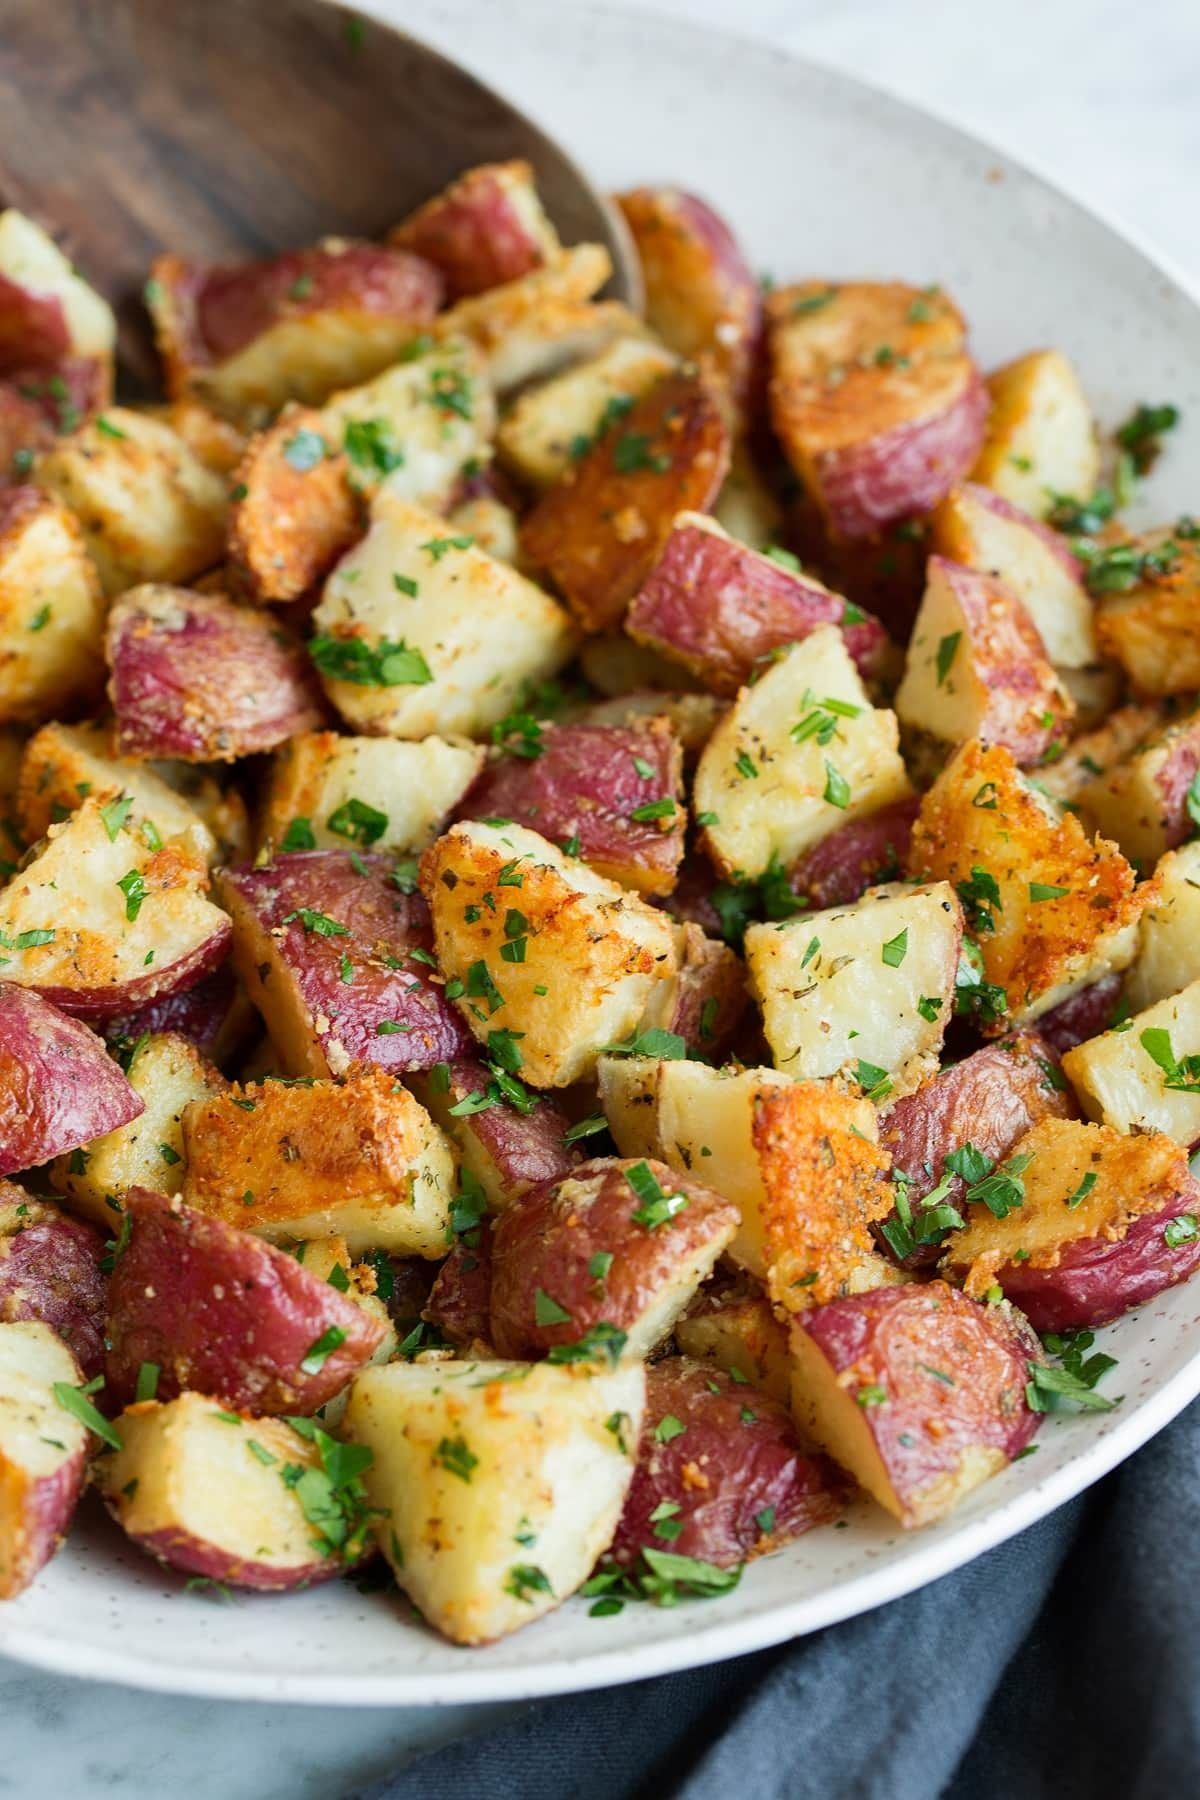 Roasted Potatoes With Parmesan Garlic And Herbs Cooking Classy Healthy Thanksgiving Recipes Cooking Herbs Herb Roasted Potatoes